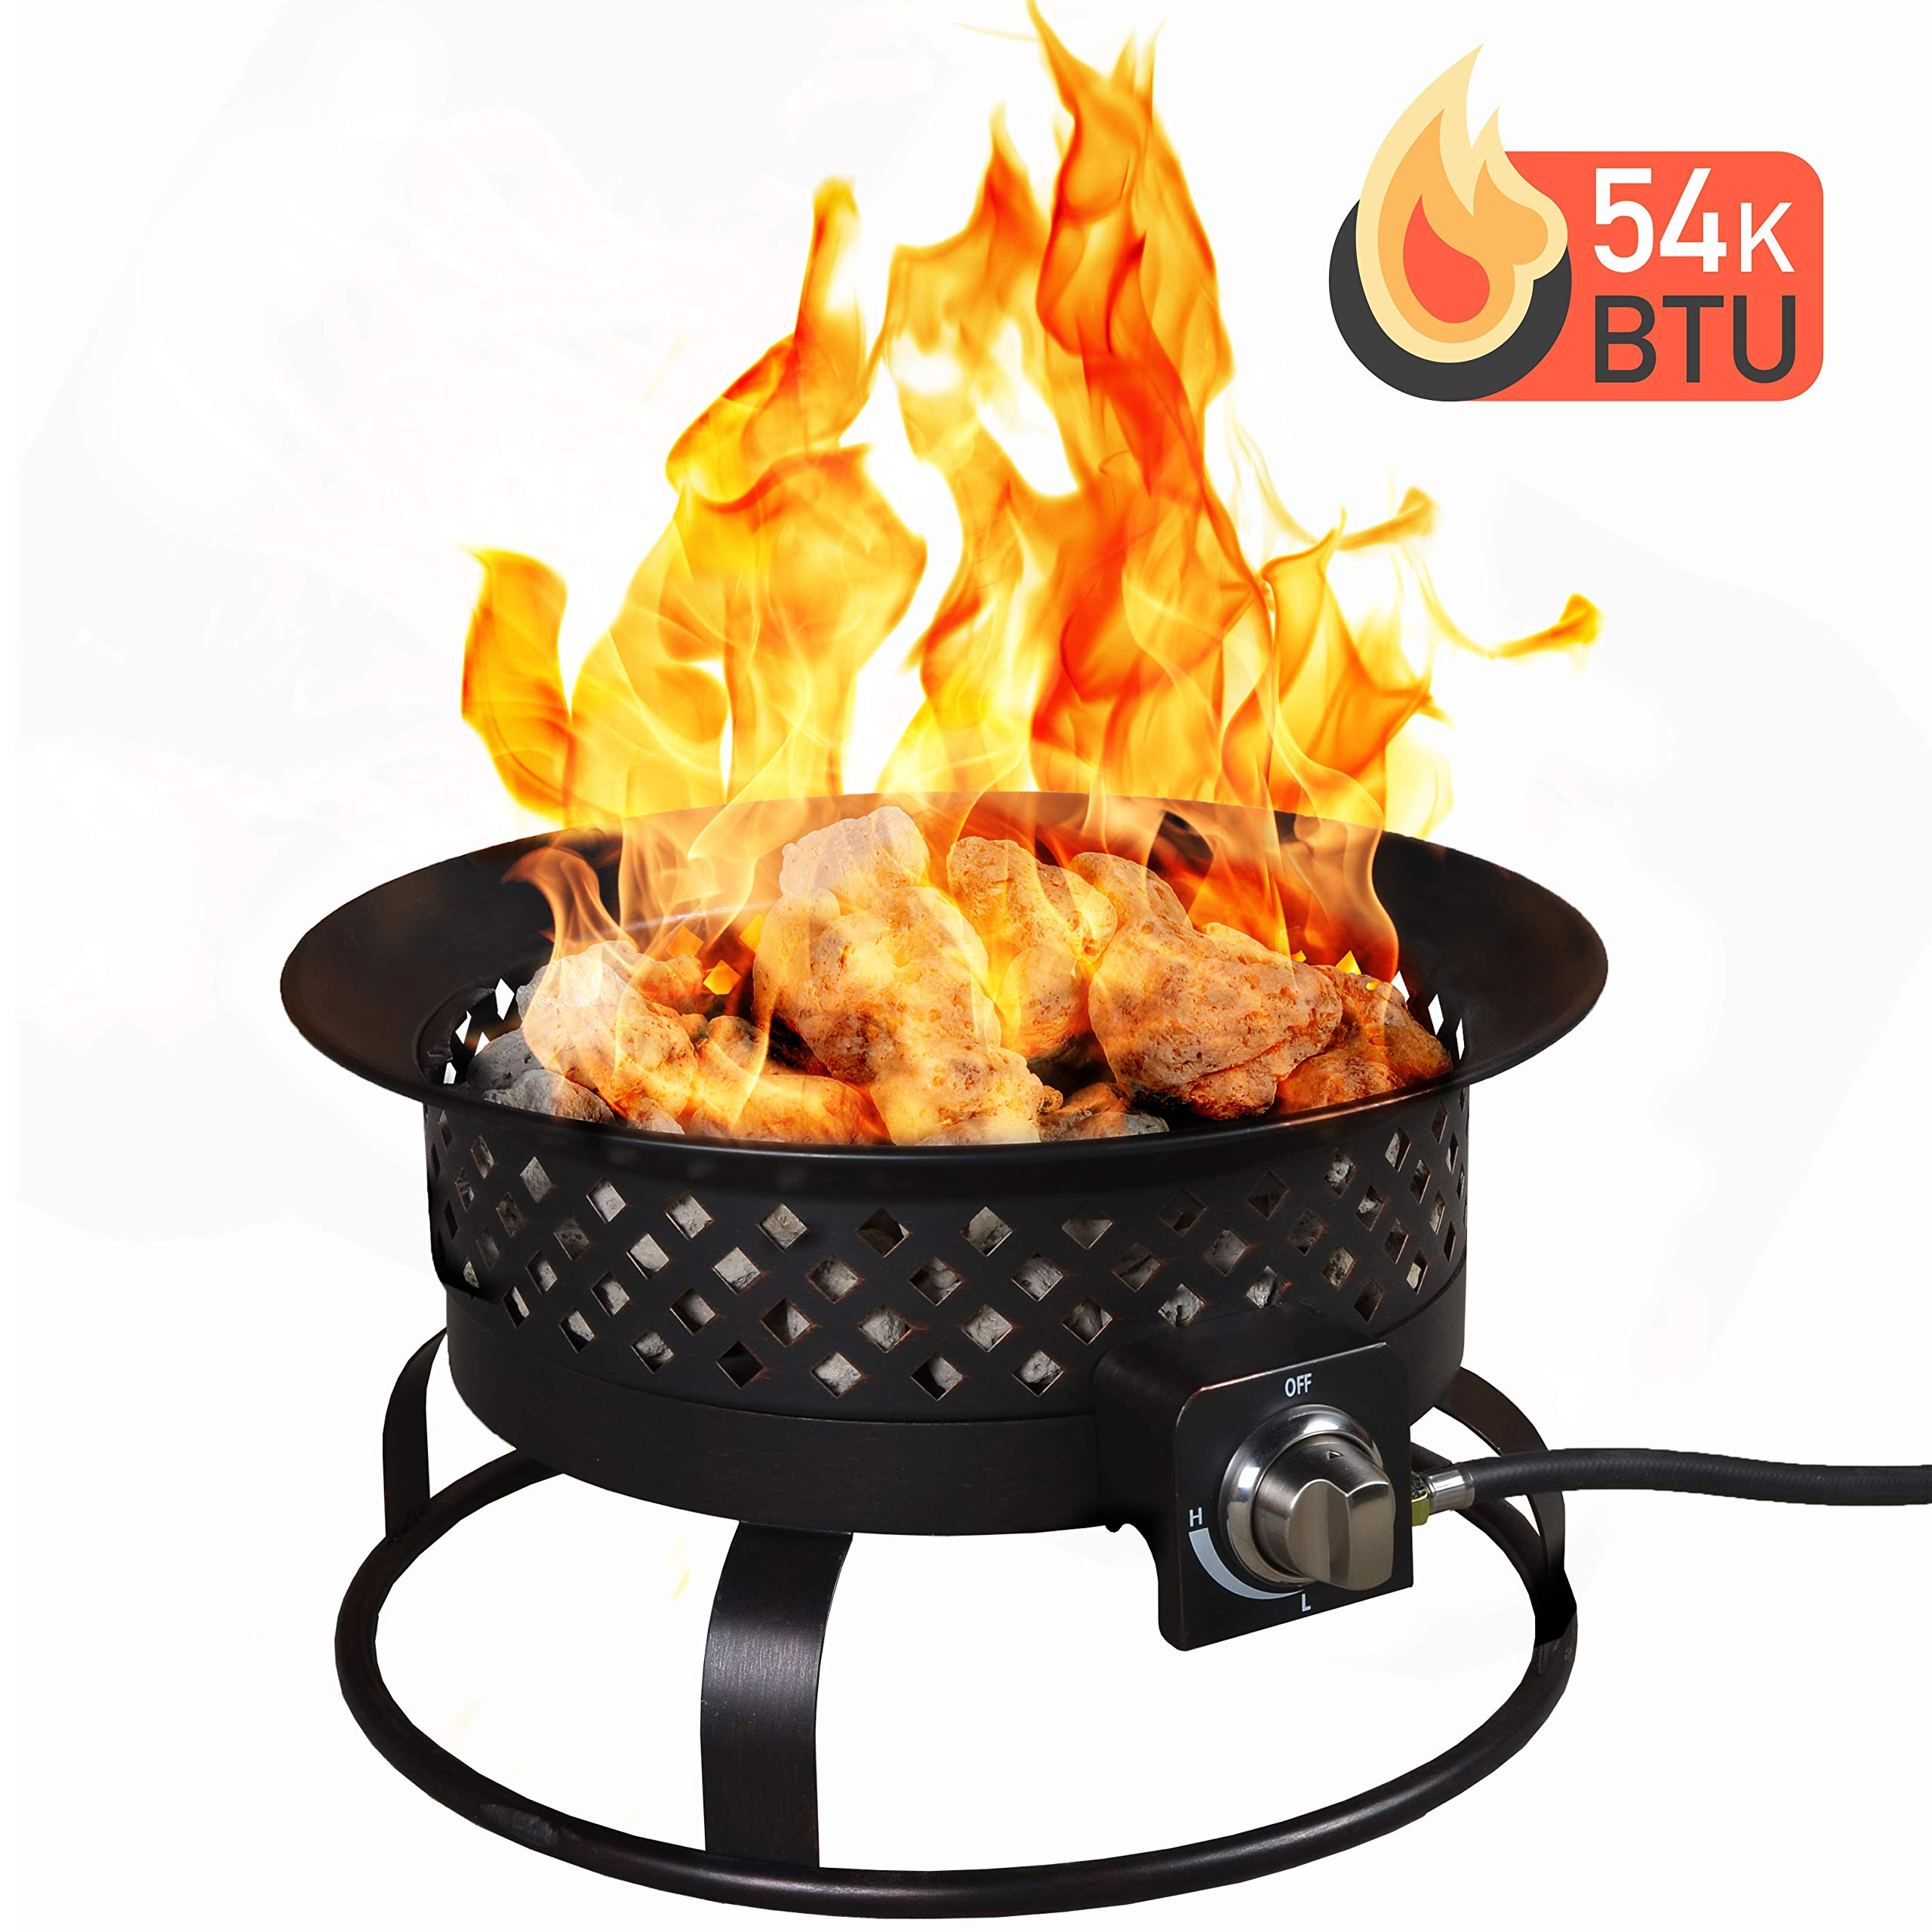 Bond Manufacturing 67836 54,000 BTU Aurora Camping, Backyard, Tailgating, Hunting and Patio. Locking Lid & Carry Handle Portable Steel Propane Gas Fire Pit Outdoor Firebowl, 18.5'', Bronze by Bond Manufacturing